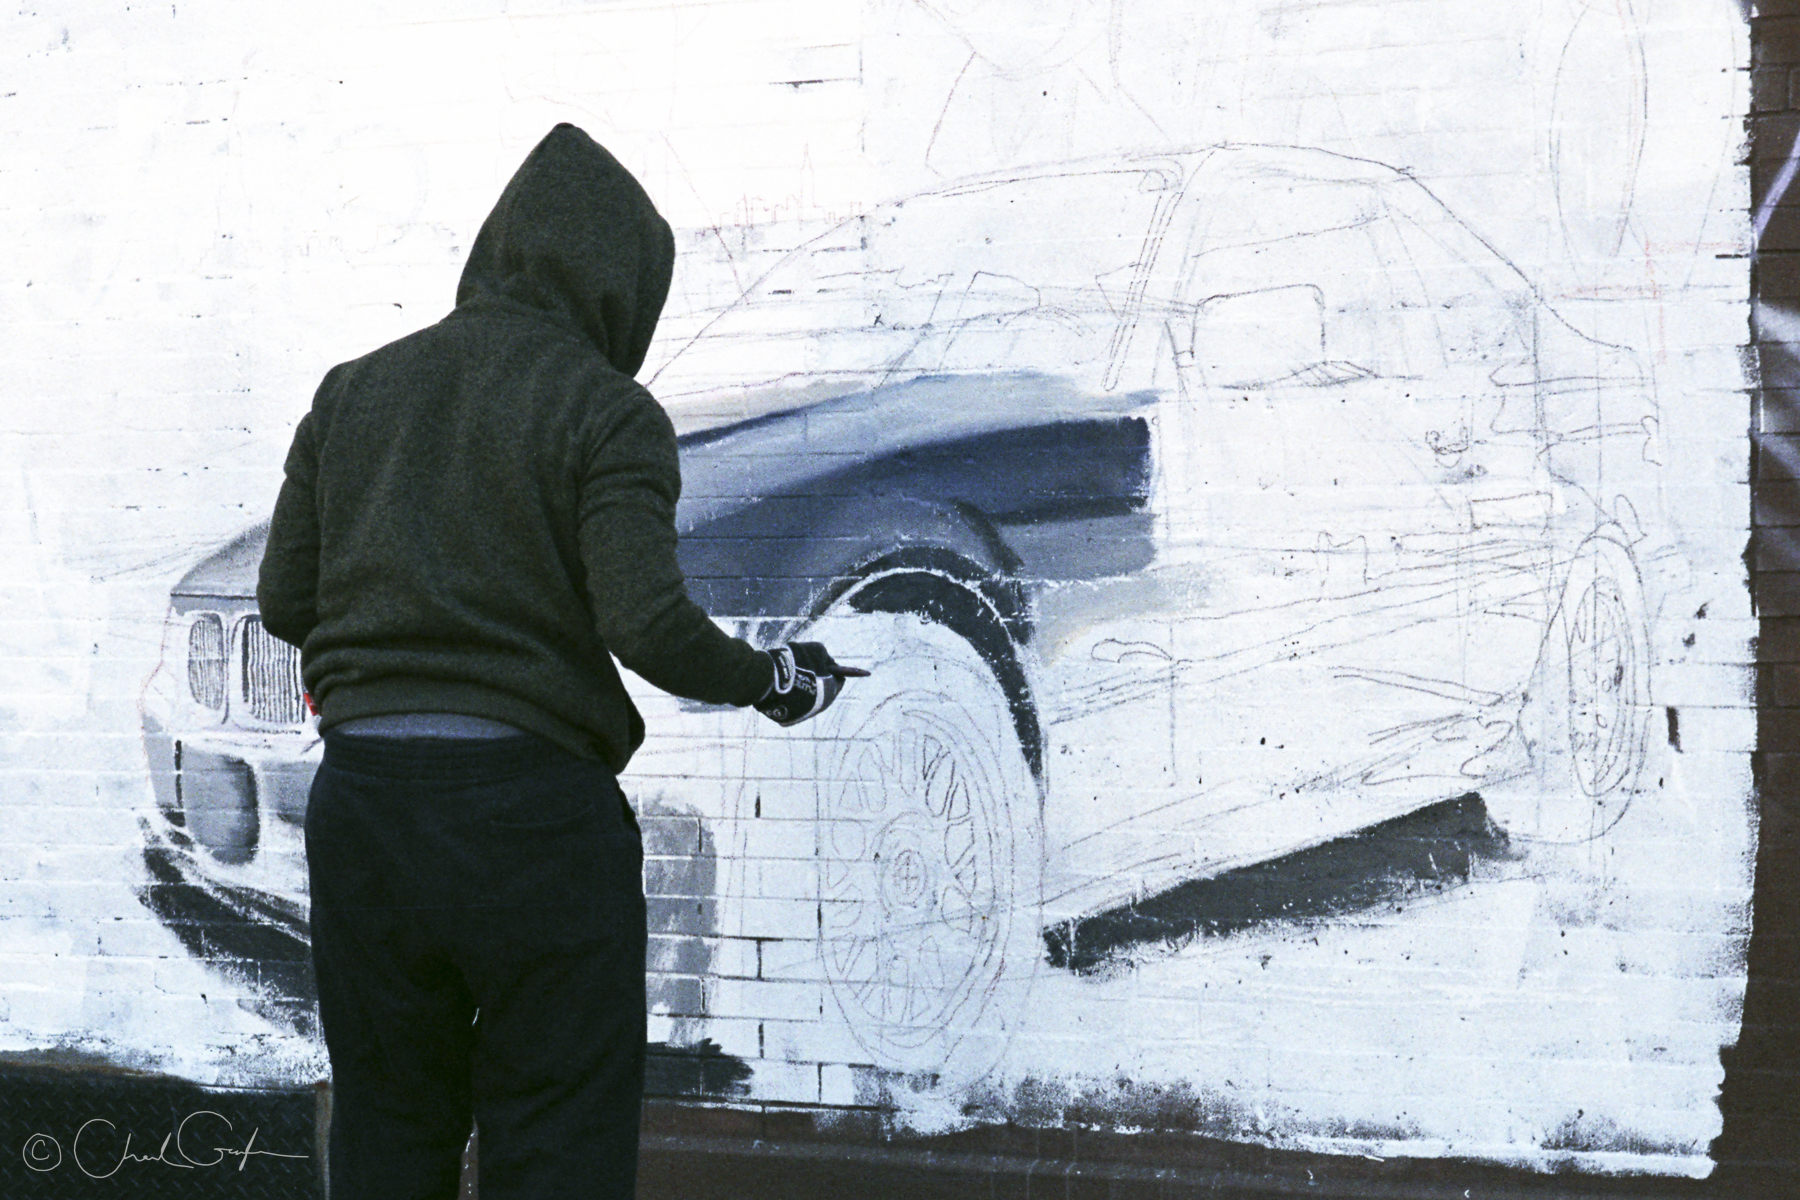 Mural Painter Working in East Harlem (Image by Chad Gayle)